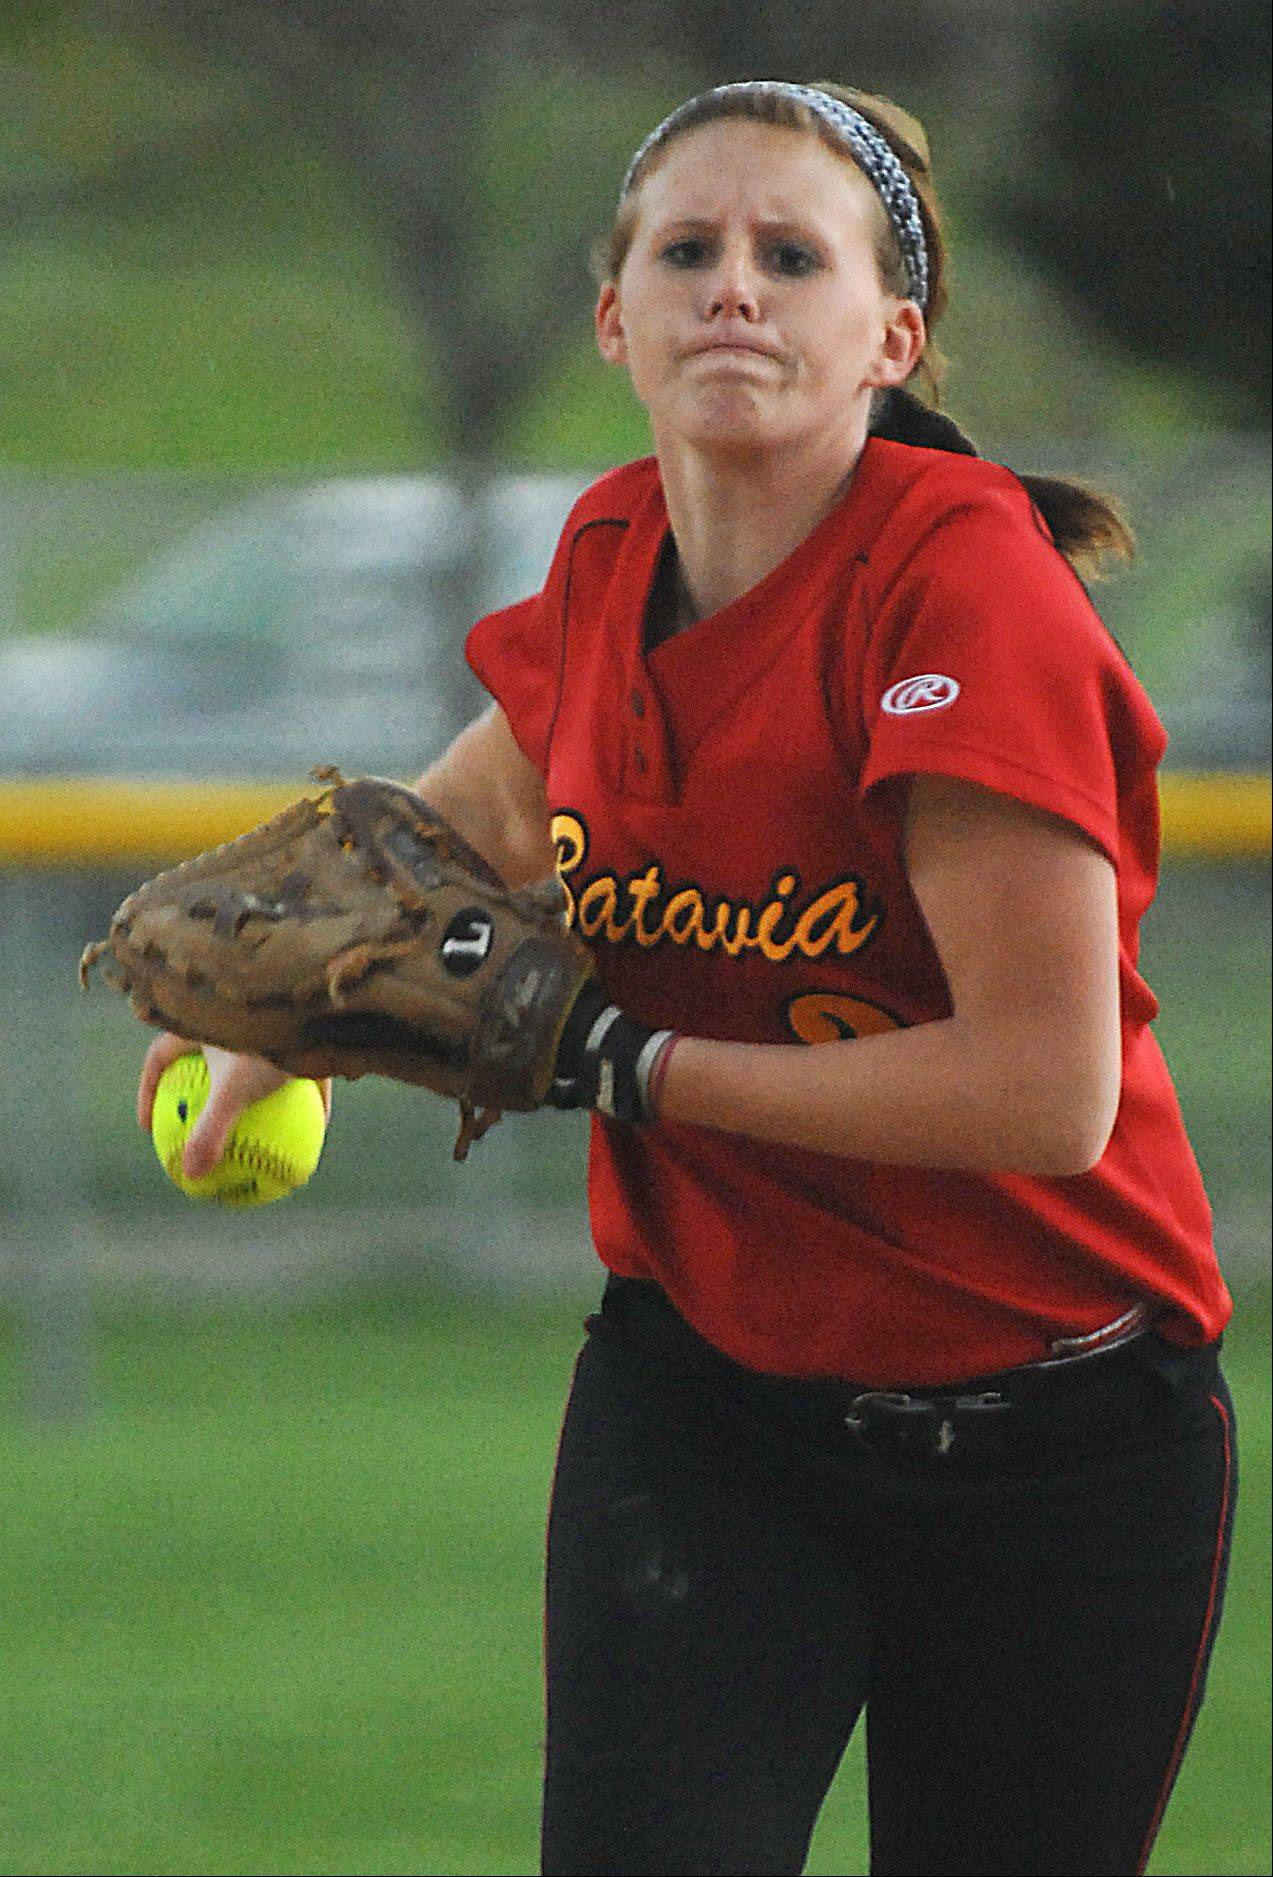 Batavia's Katie Coleman winds up against Elgin Wednesday in Elgin. She struck out 11 batters.